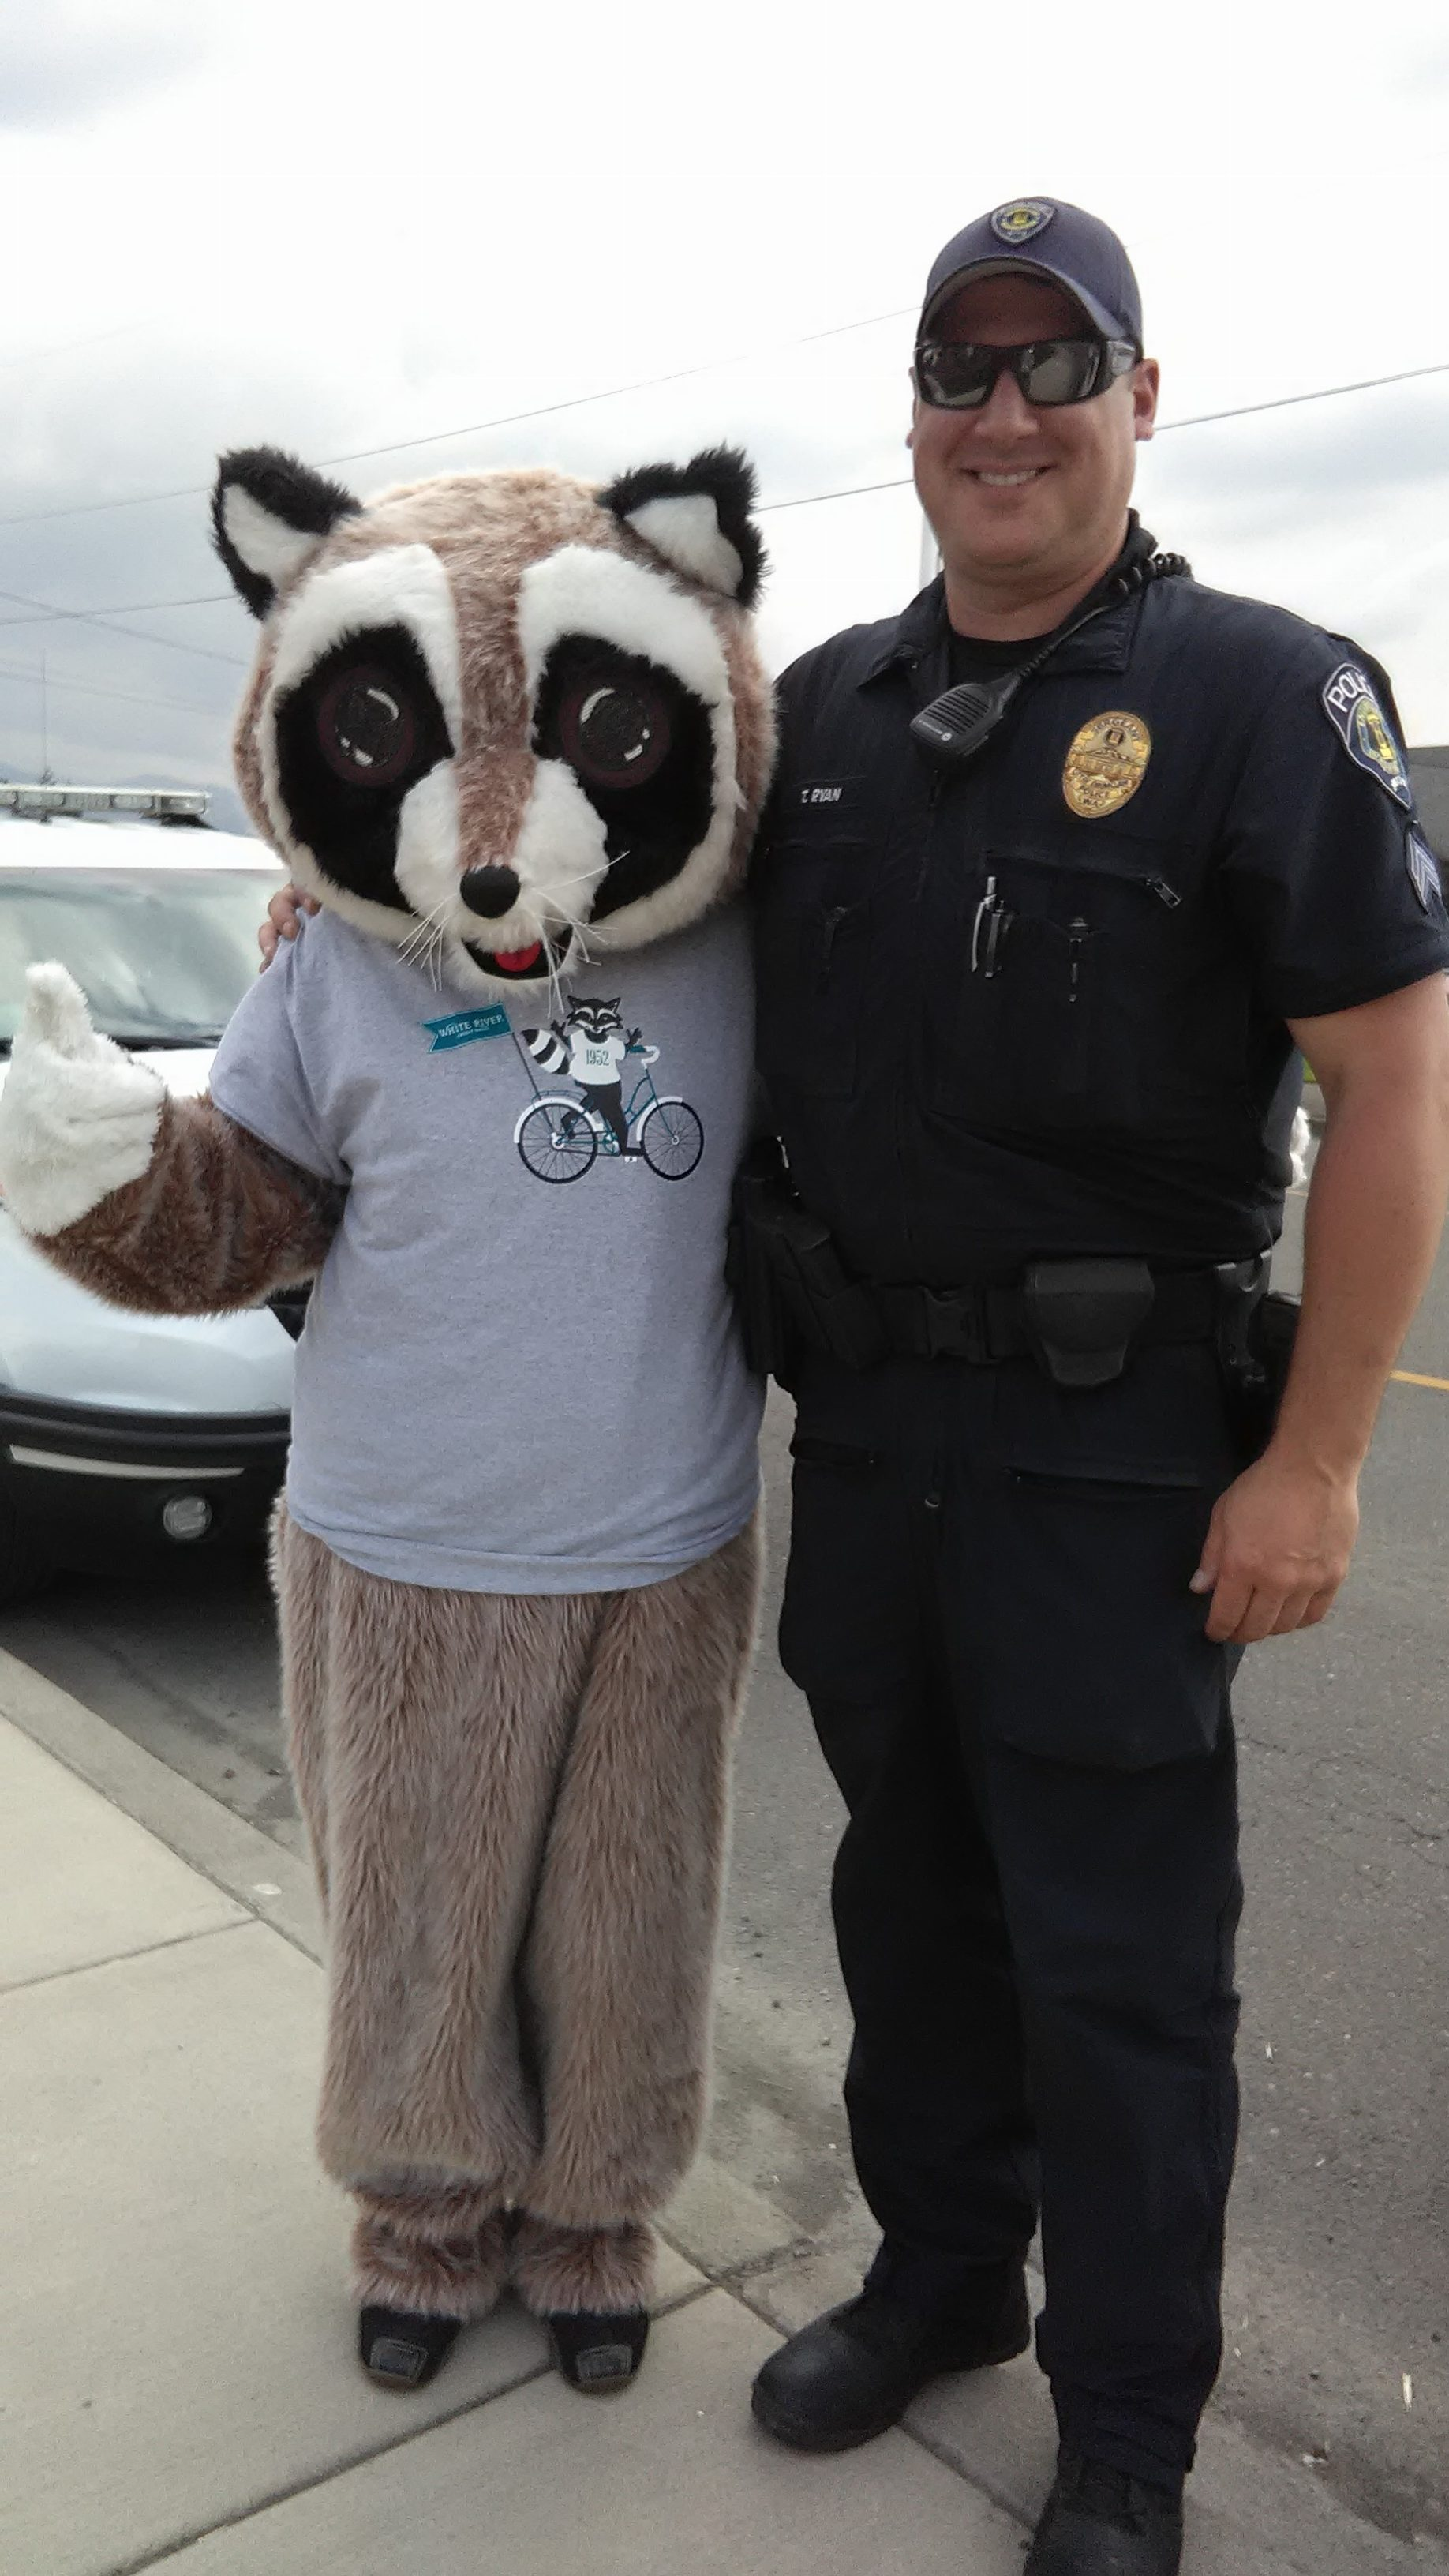 Rocky Raccoon with police officer